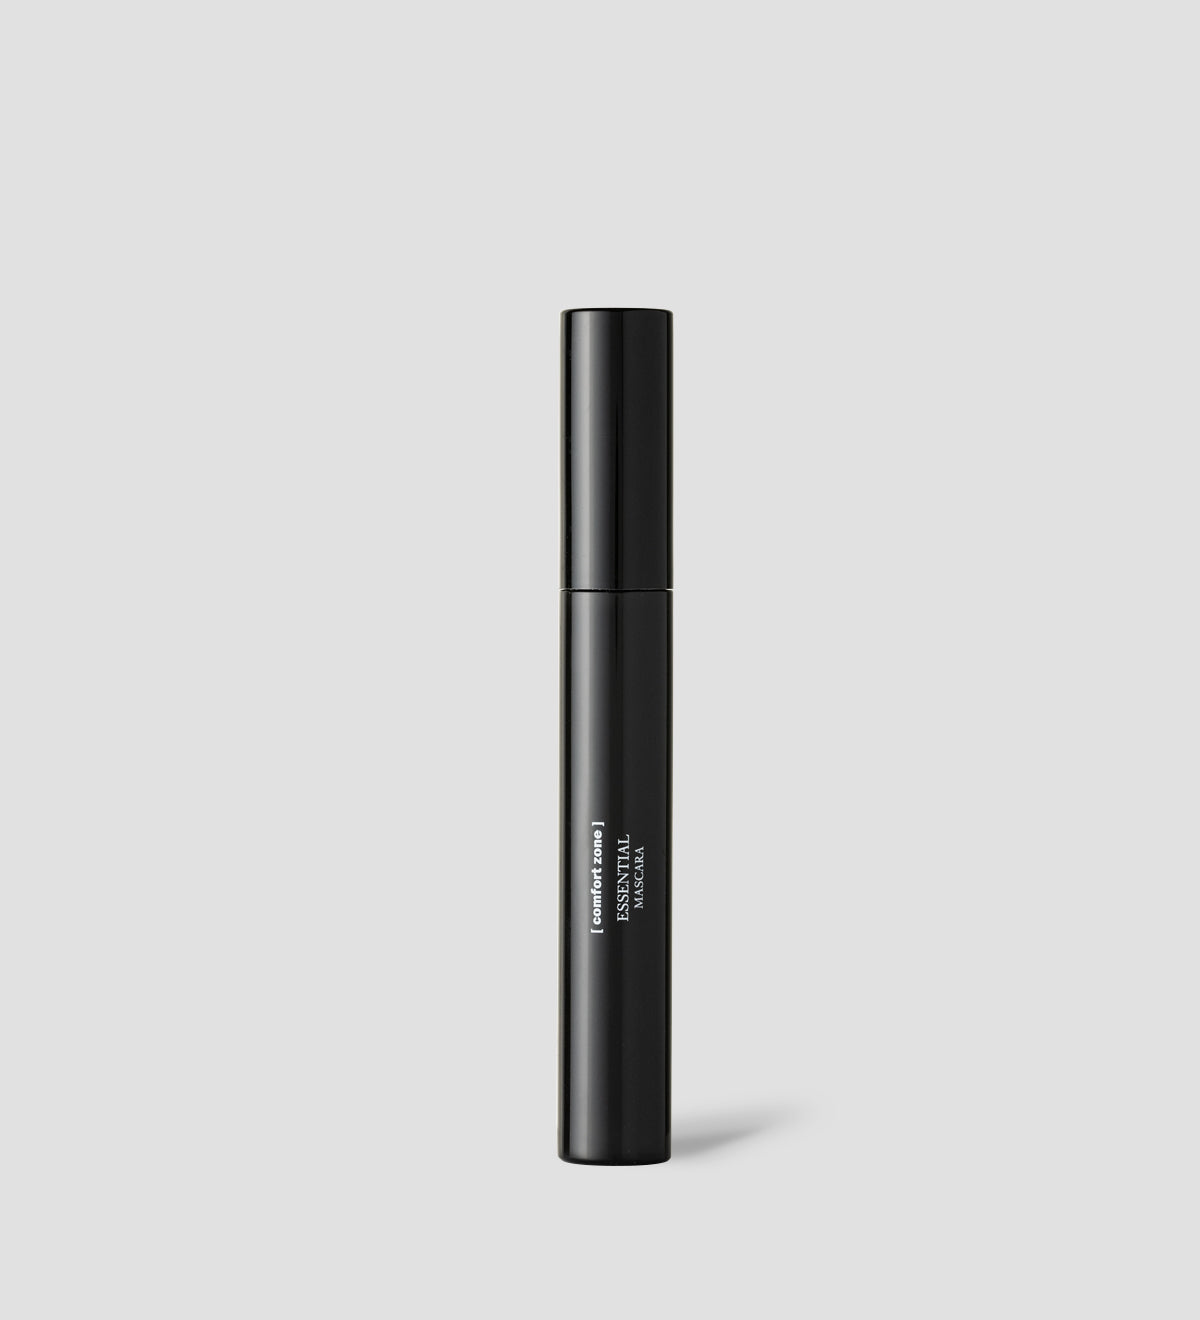 Comfort Zone: ESSENTIAL MASCARA High definition lengthening mascara -1